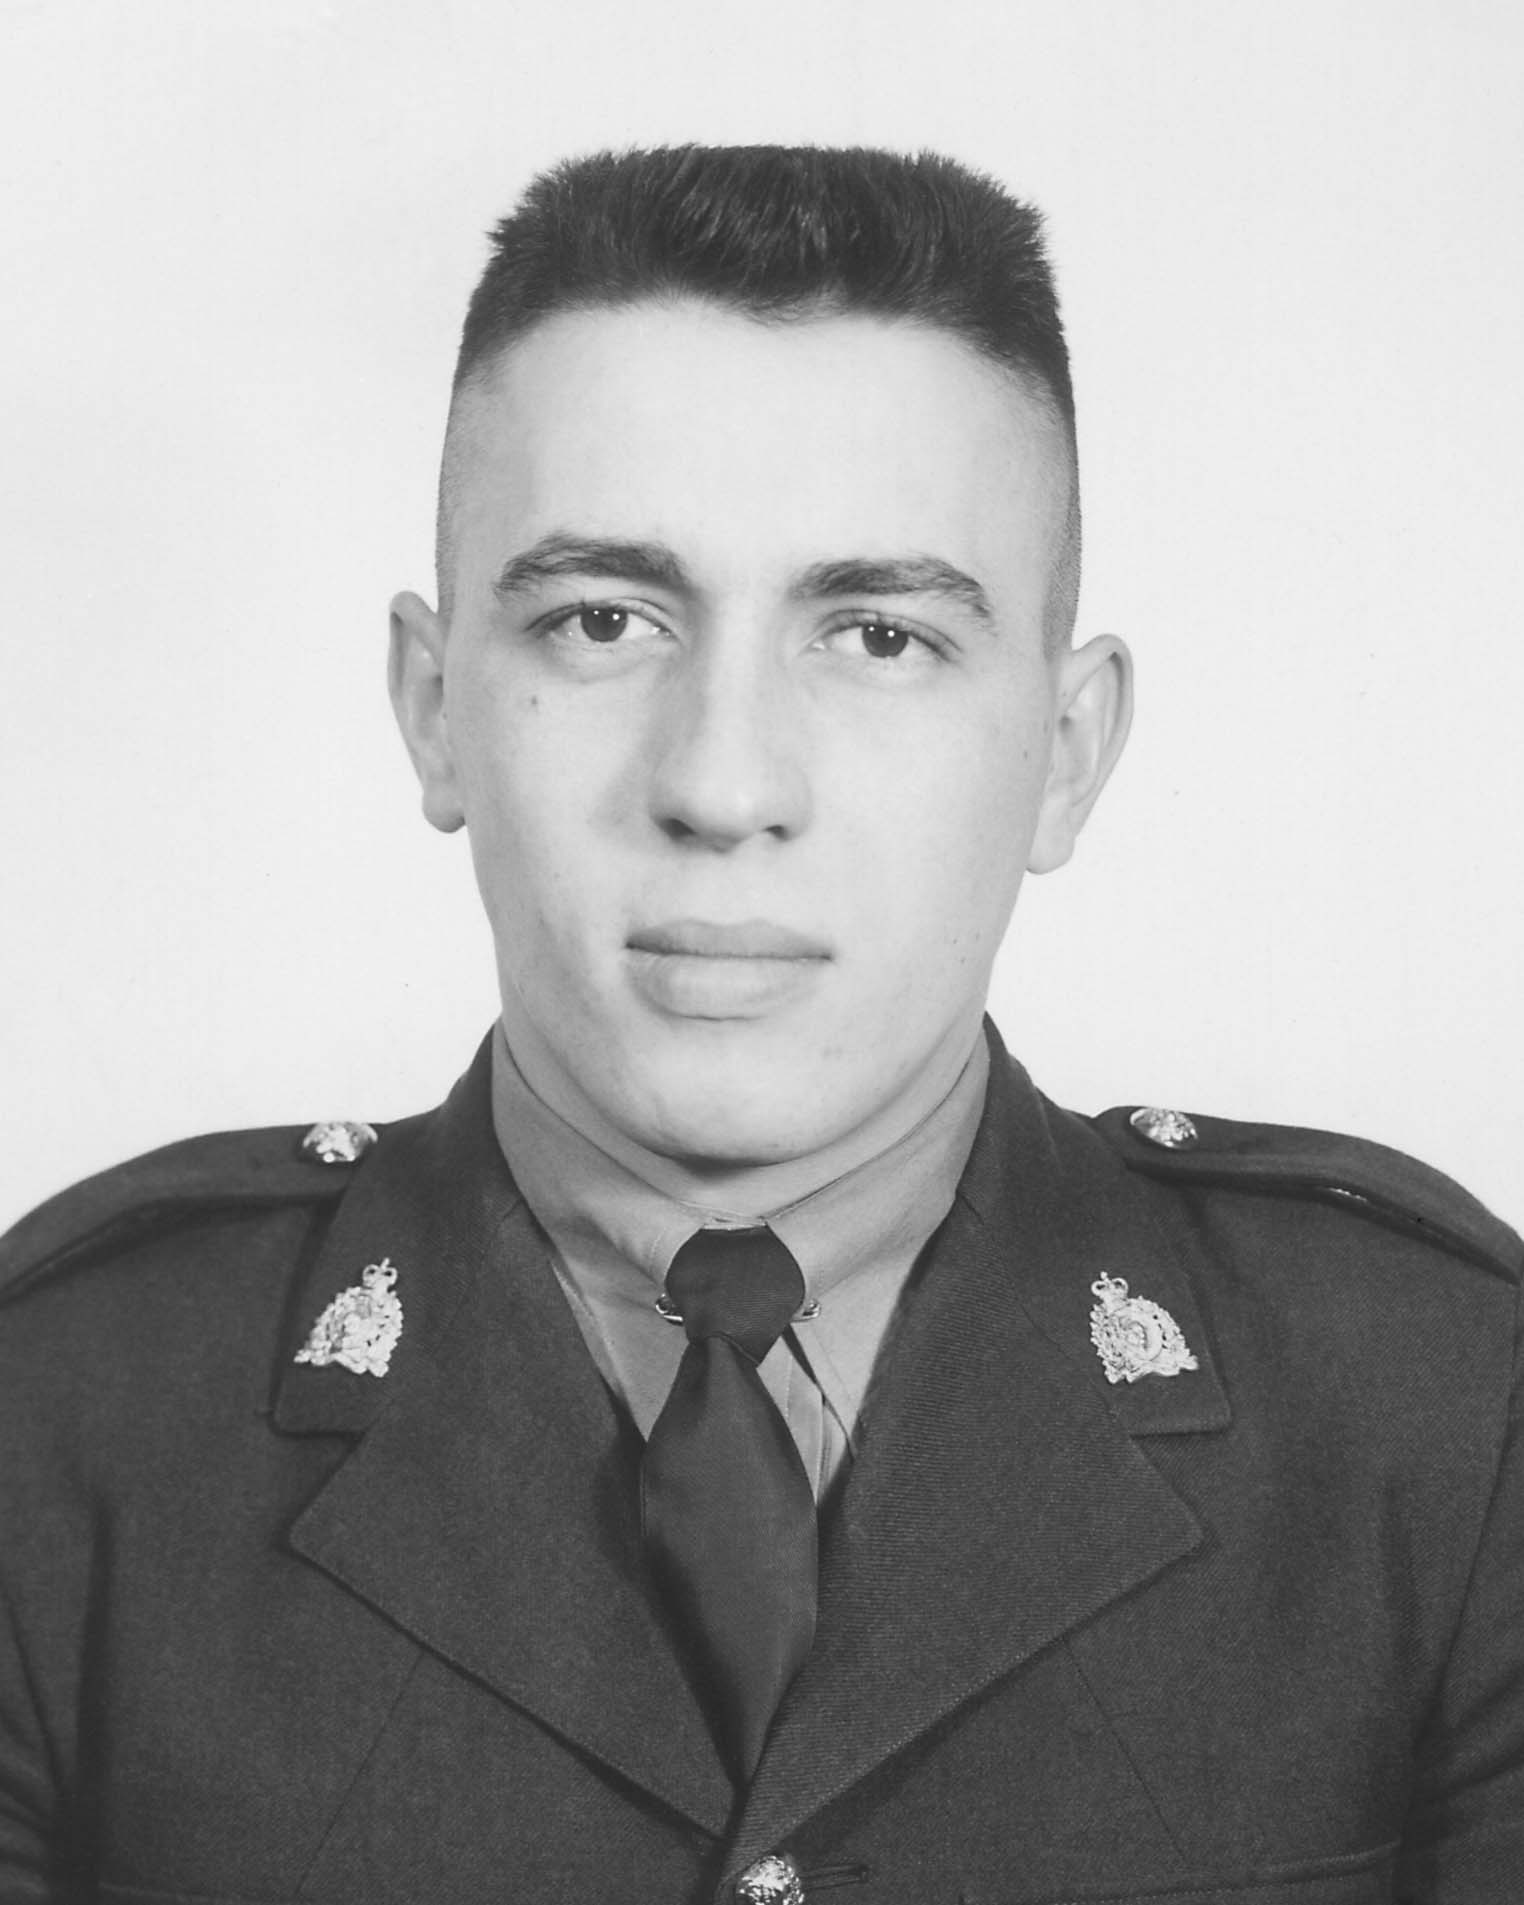 Second Class Constable Maurice Melvin Melnychuk – © Her Majesty the Queen in Right of Canada as represented by the Royal Canadian Mounted Police